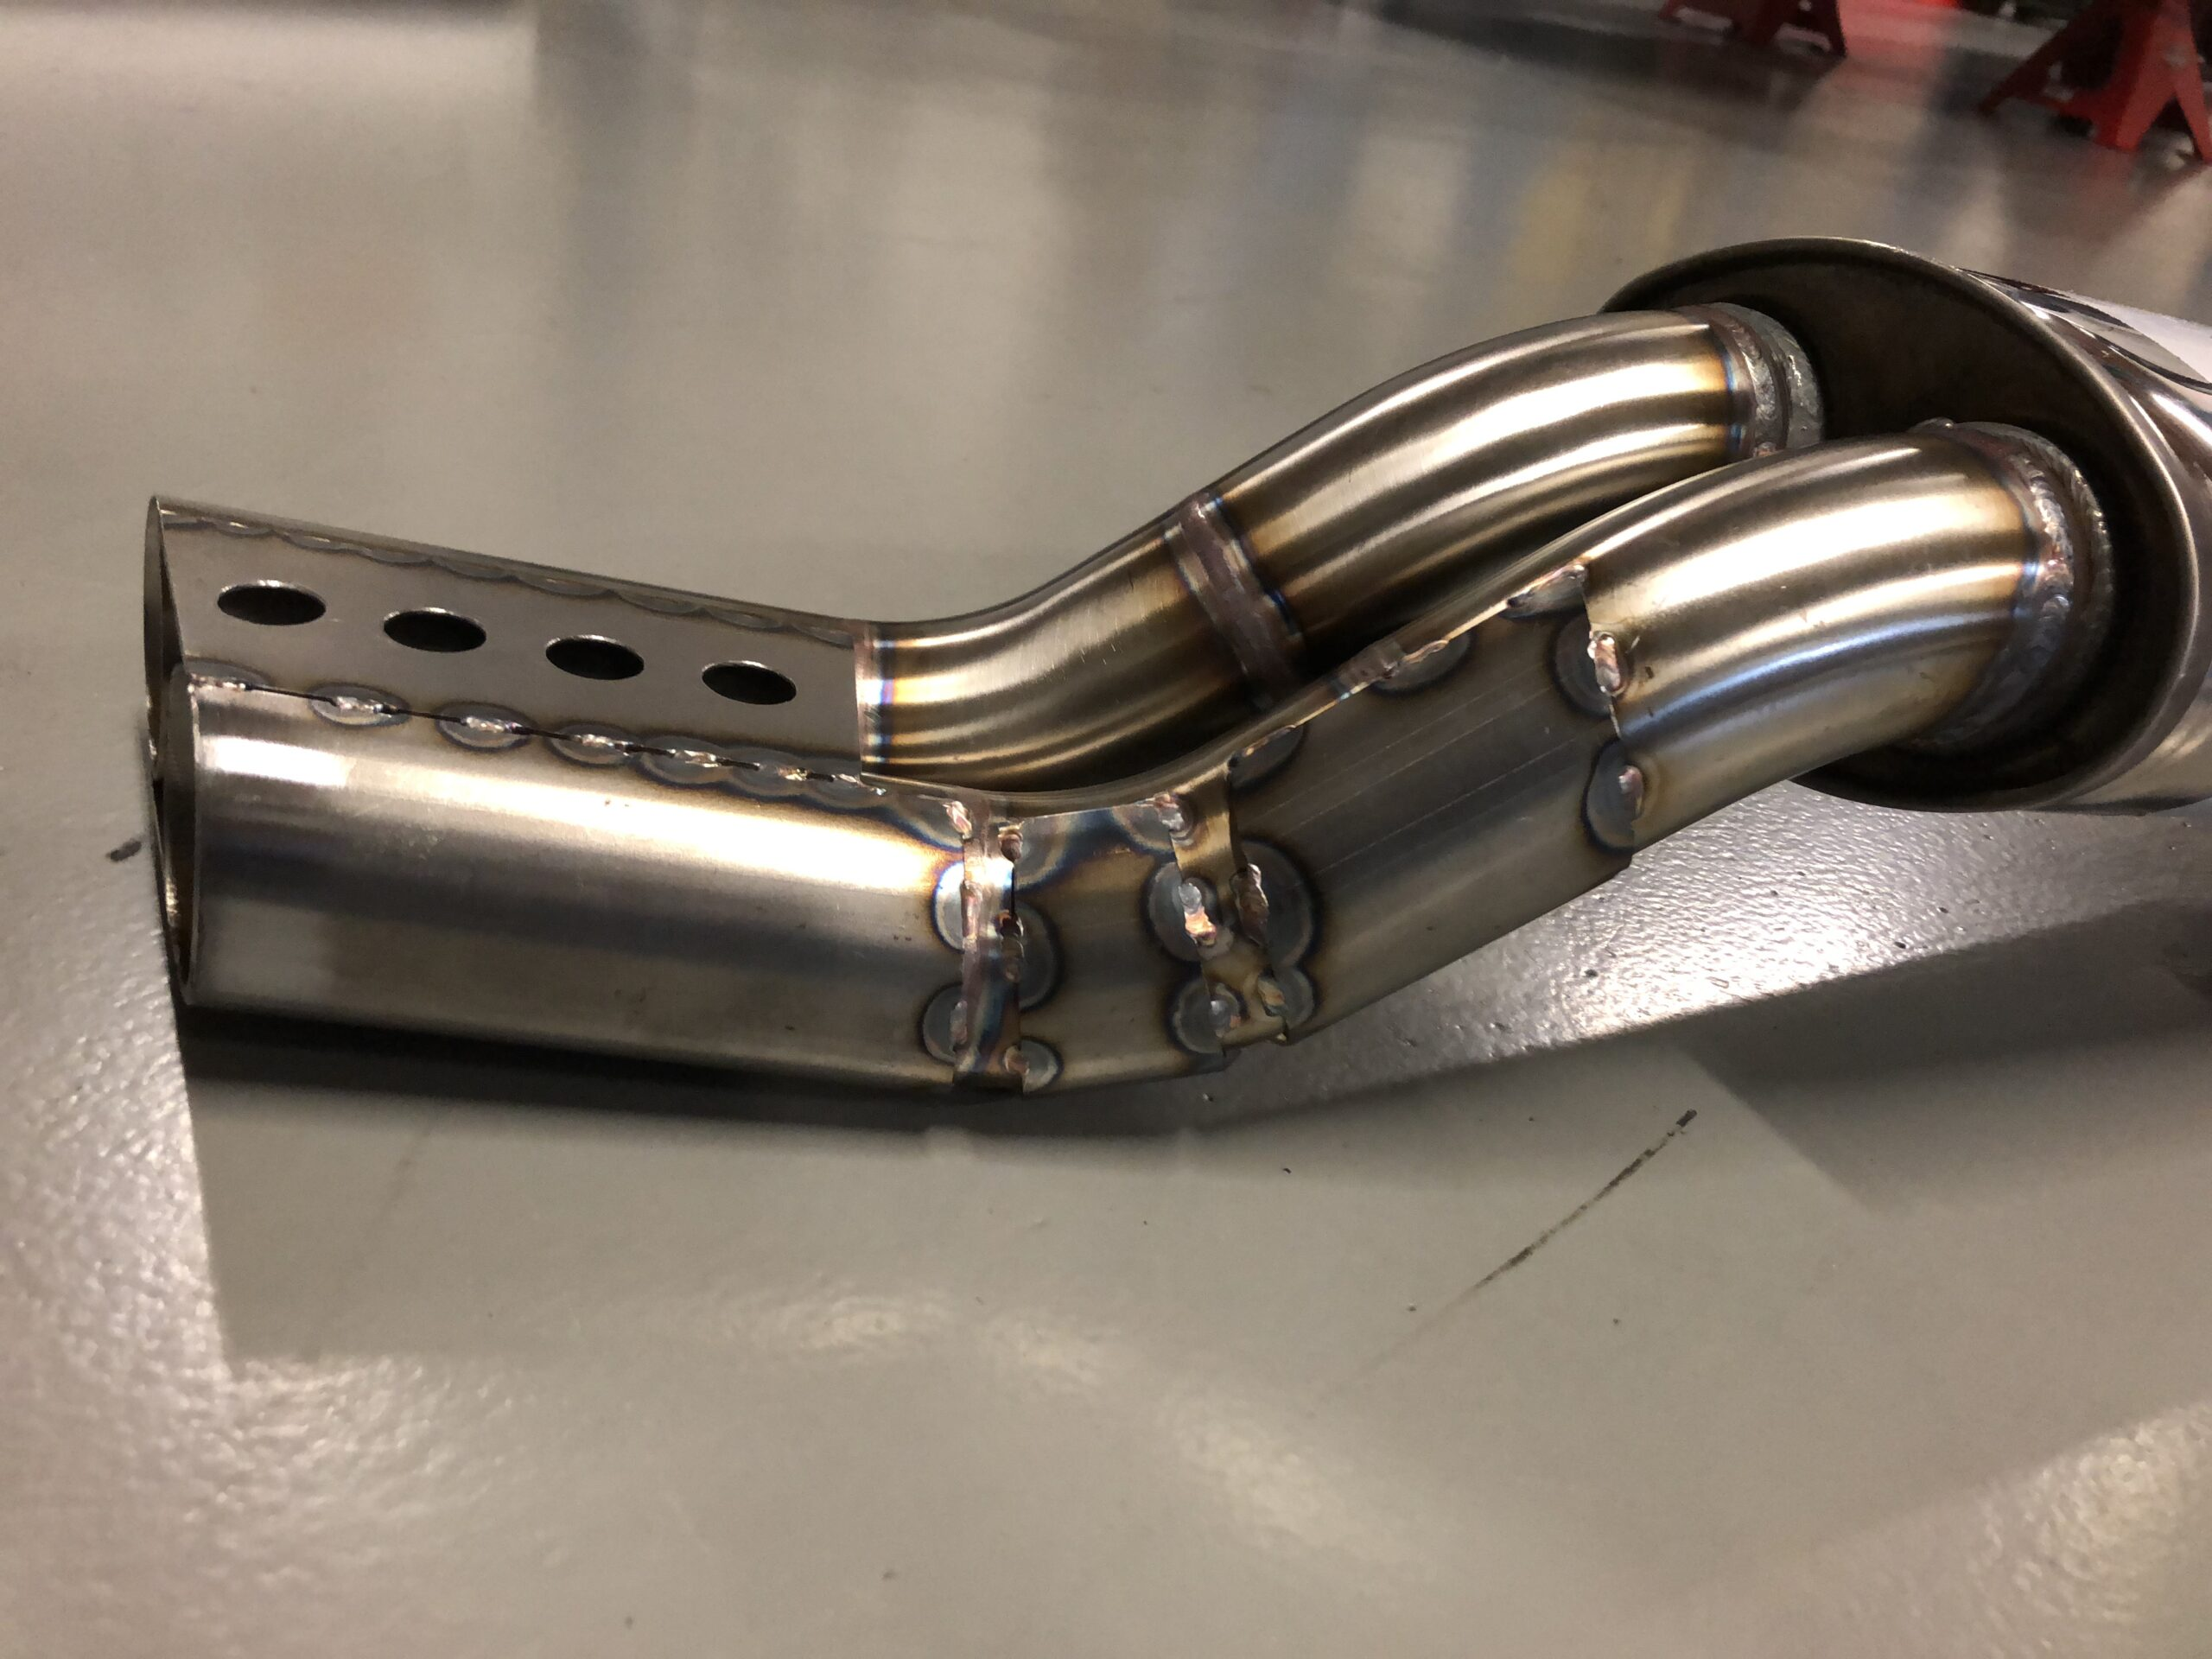 Stainless steel sidepipe